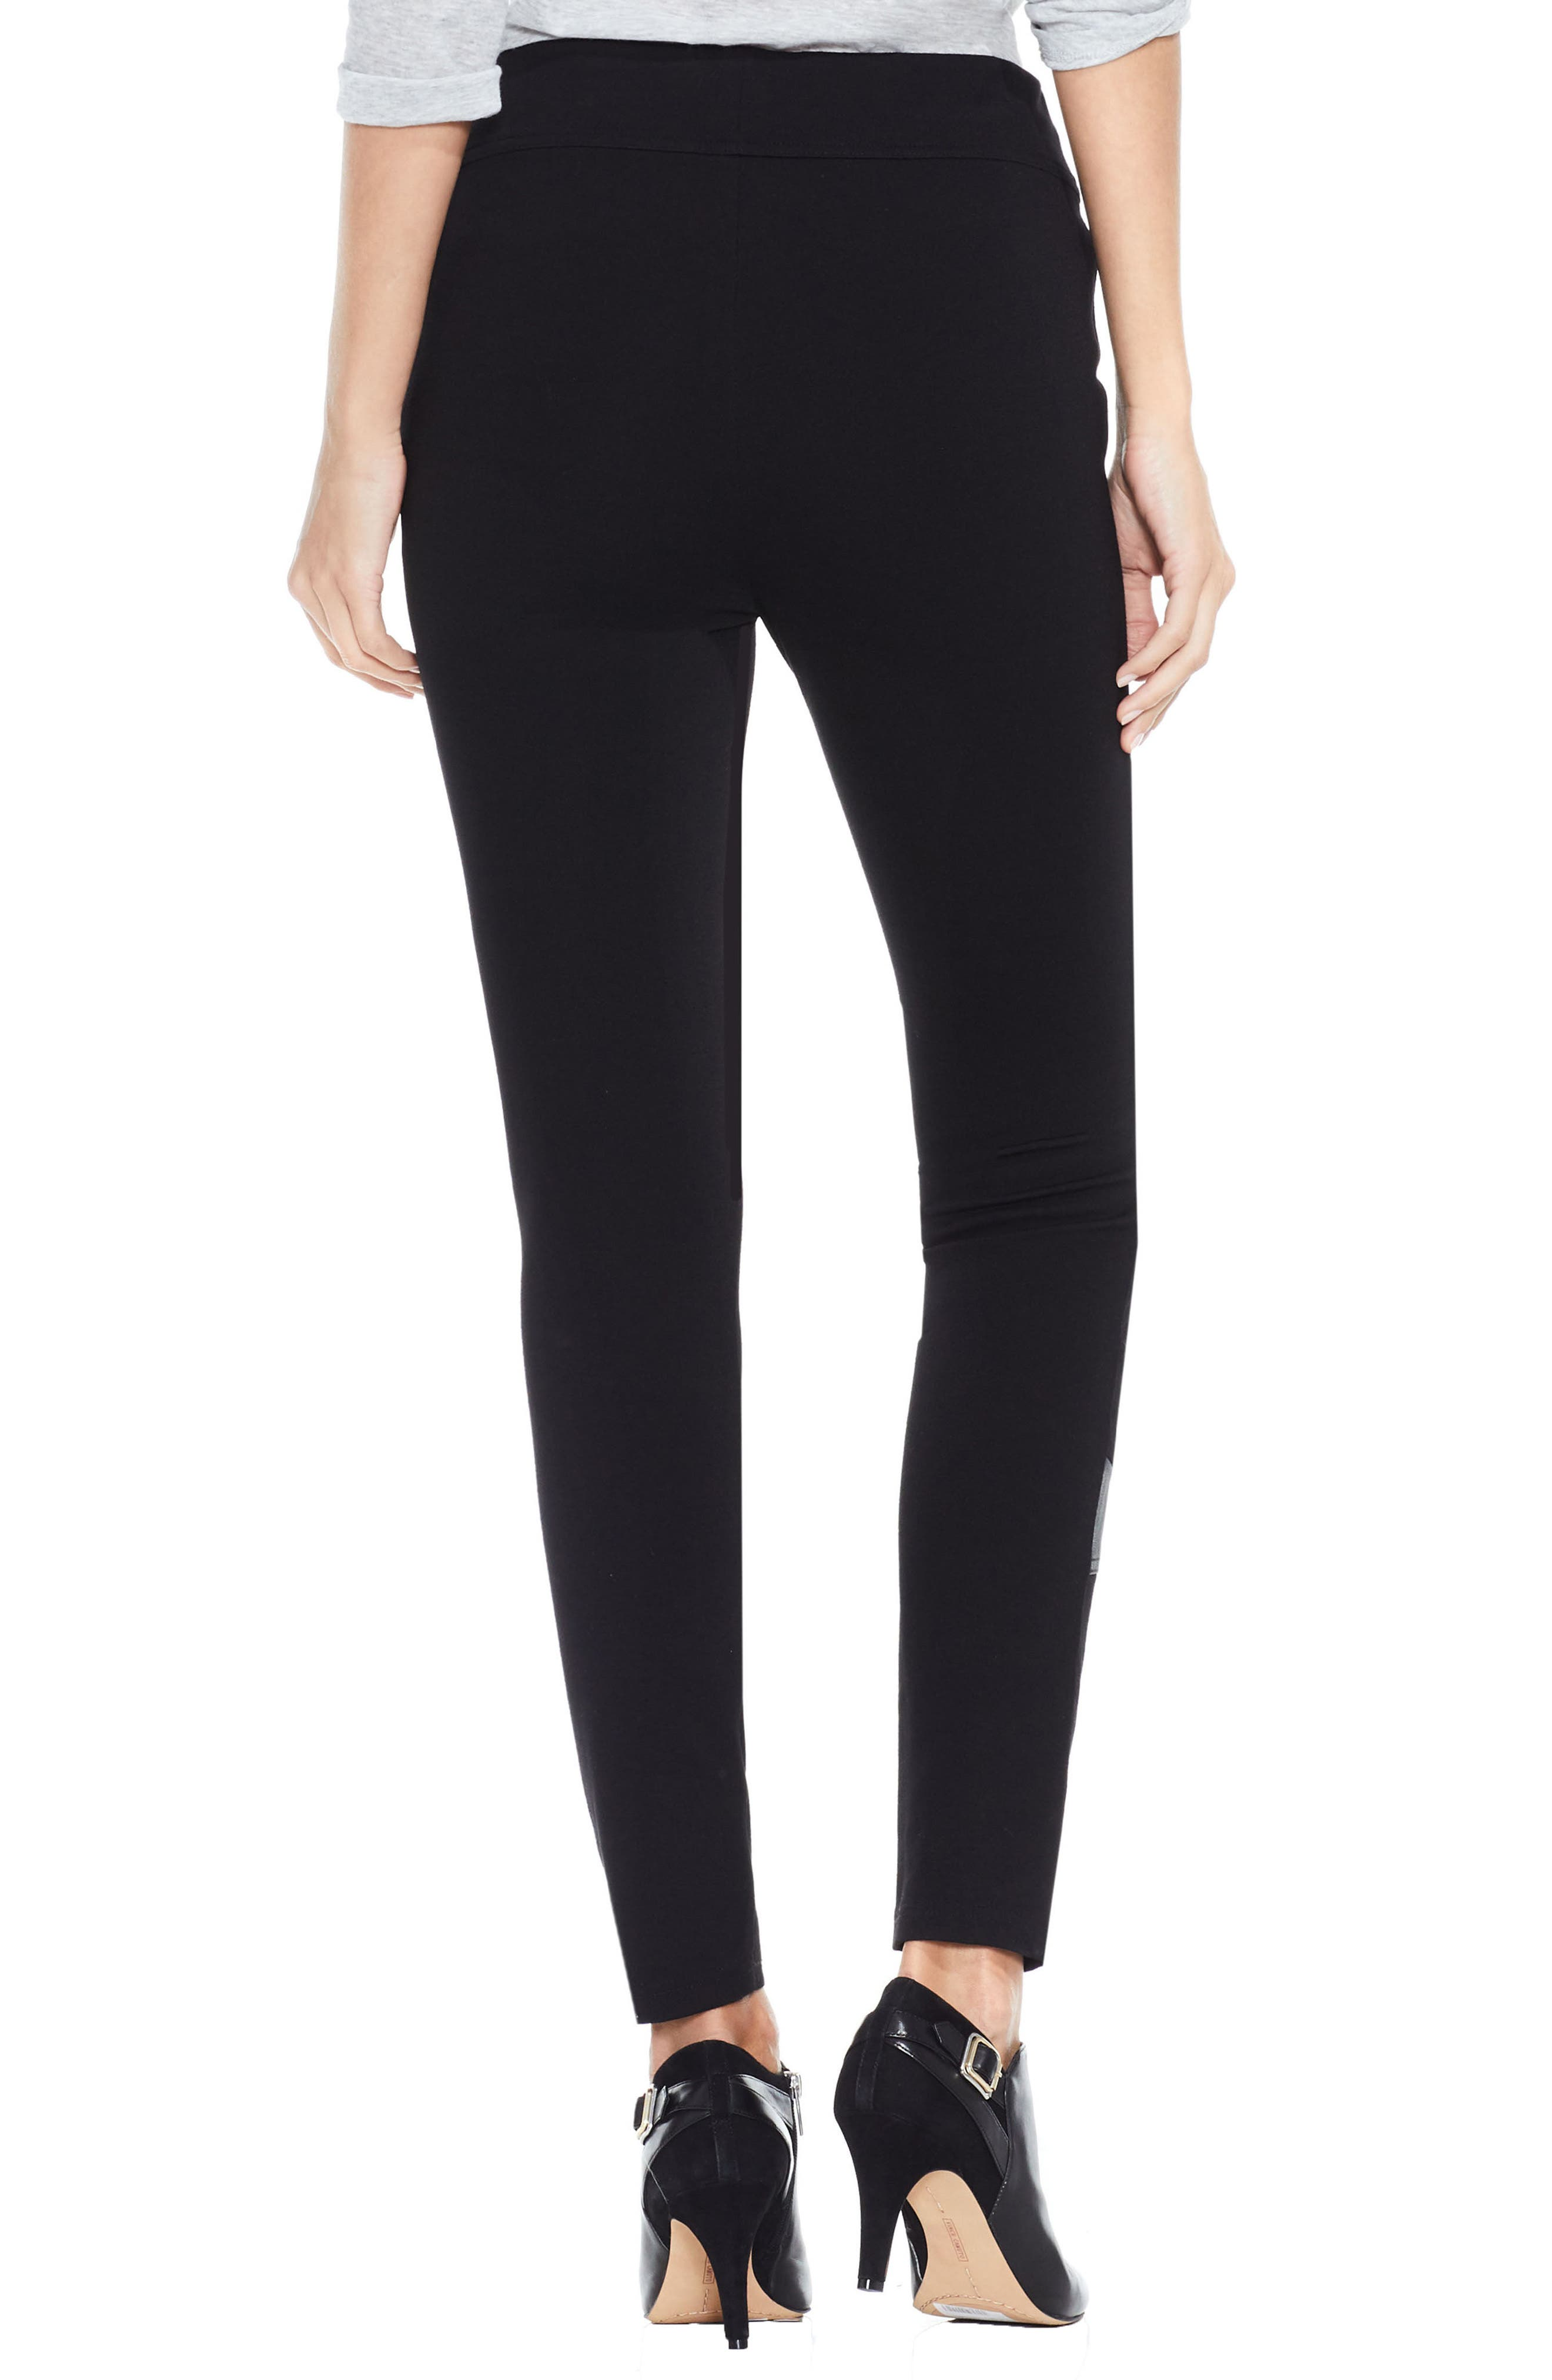 Two by Vince Camuto Faux Leather Trim Moto Leggings,                             Alternate thumbnail 2, color,                             001